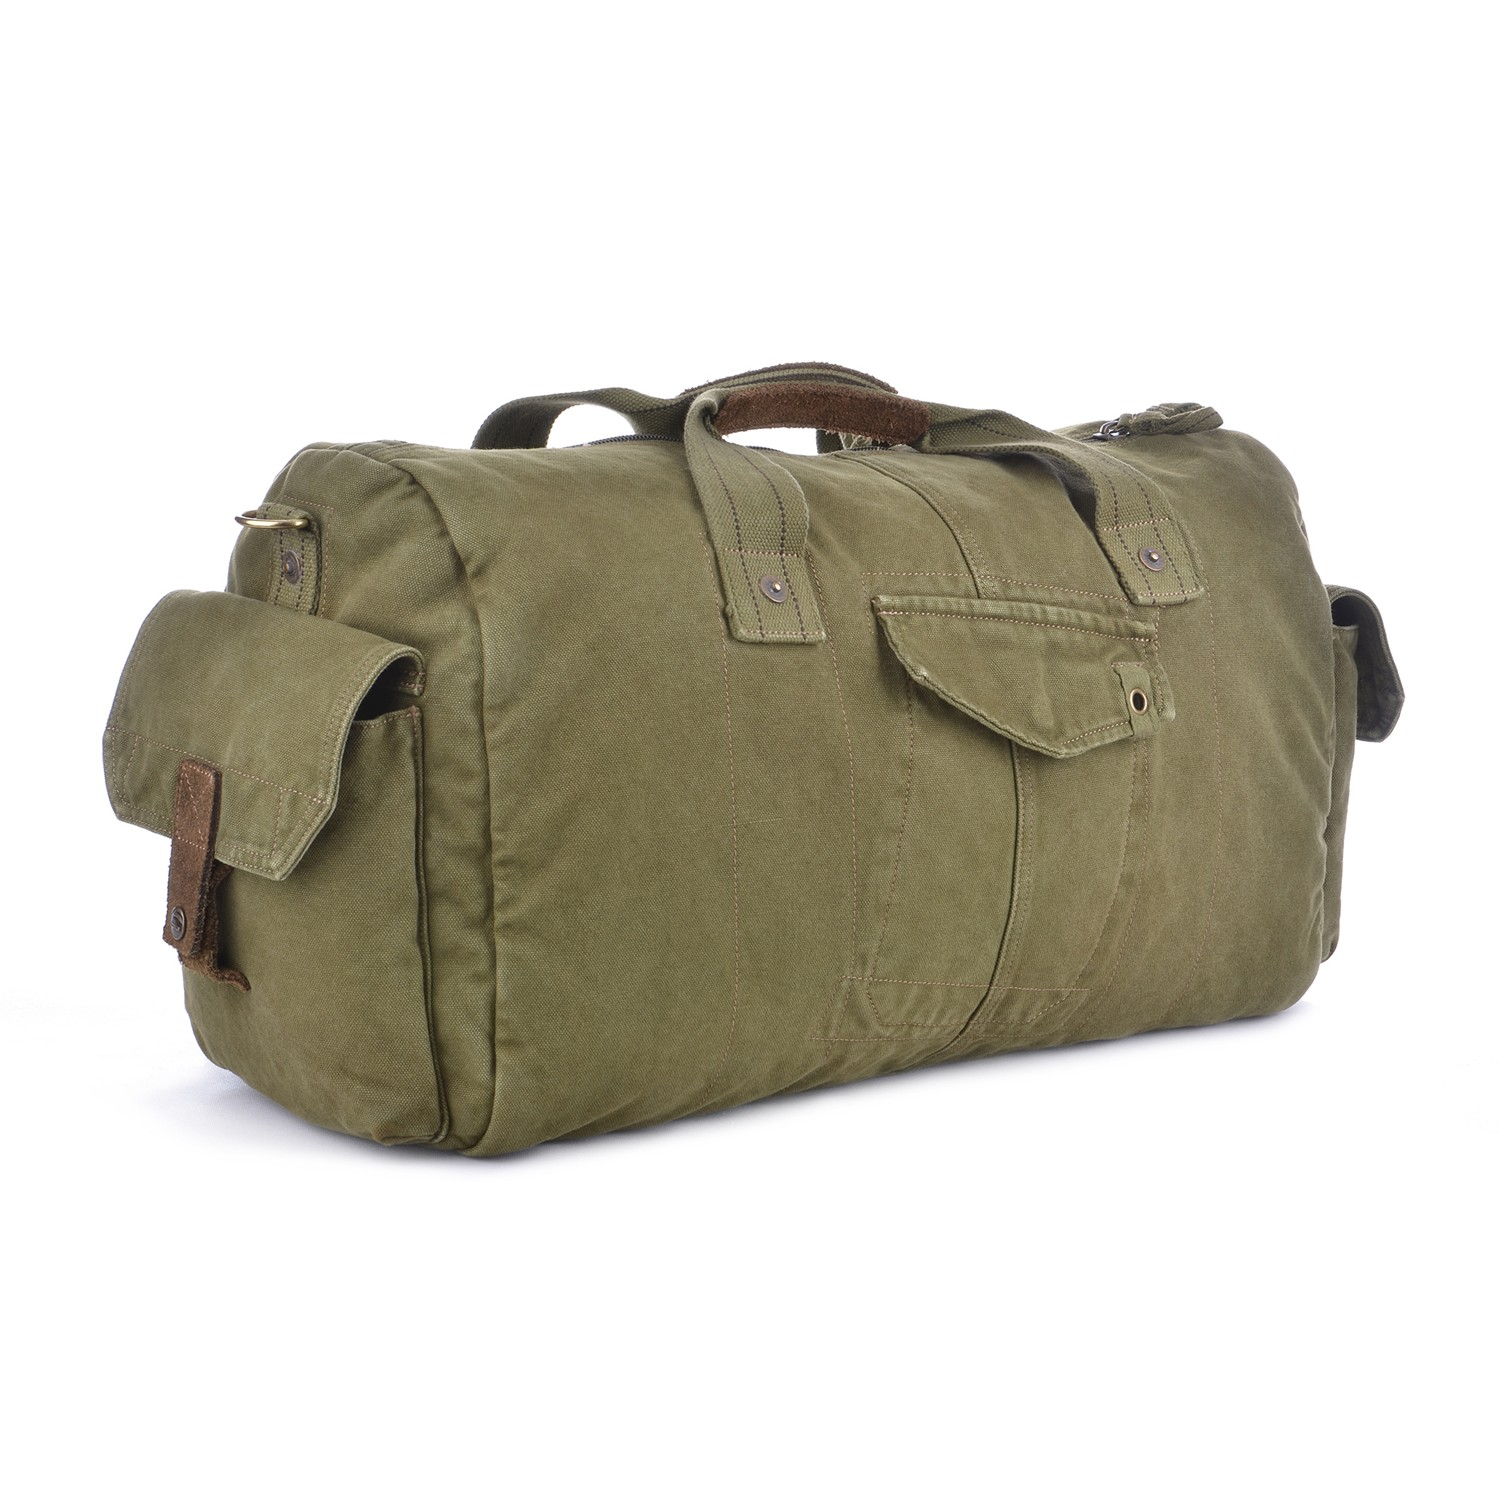 Gootium Vintage Canvas Duffle Bag Travel Tote Weekend Holdall Sports Gym Bag